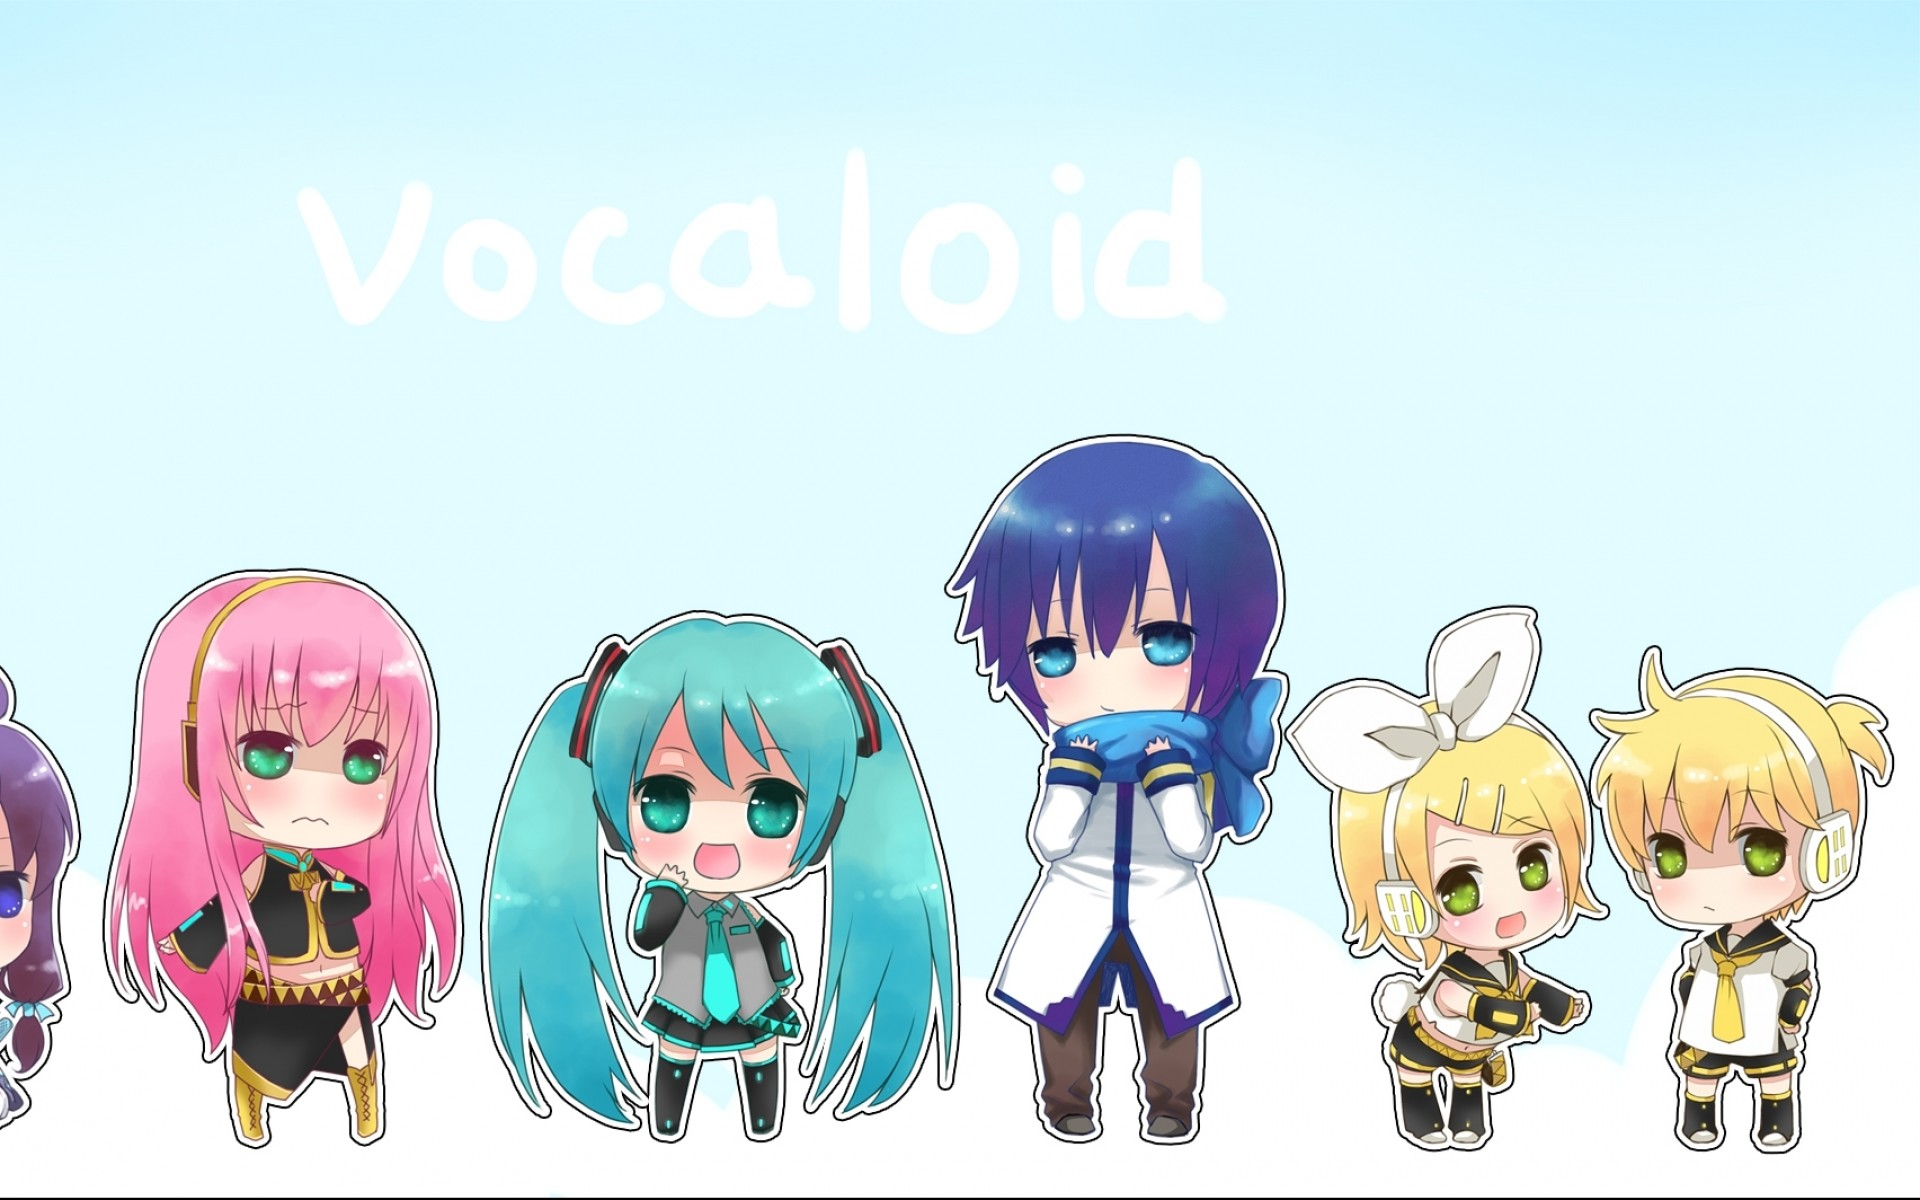 Cute anime backgrounds 63 images - Chibi background ...